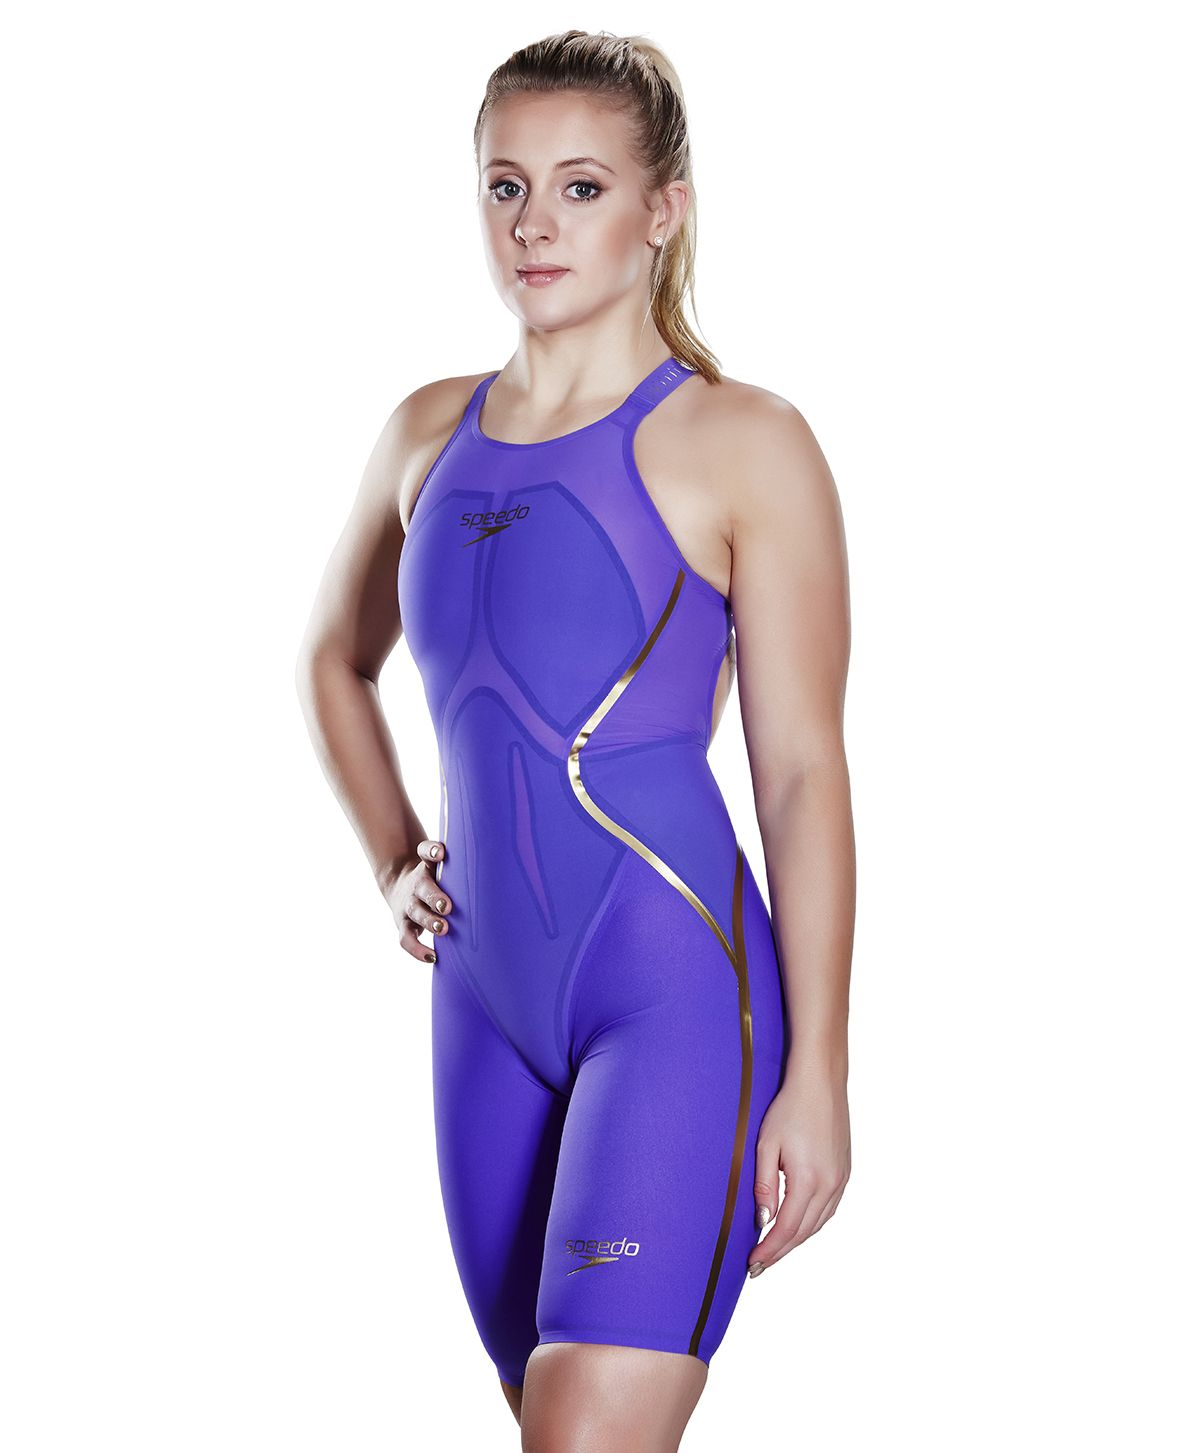 7e6eb84d34 LZR Racer X Openback Kneeskin - Speedo LZR Racer X - Competition Swimwear -  COMPETITION